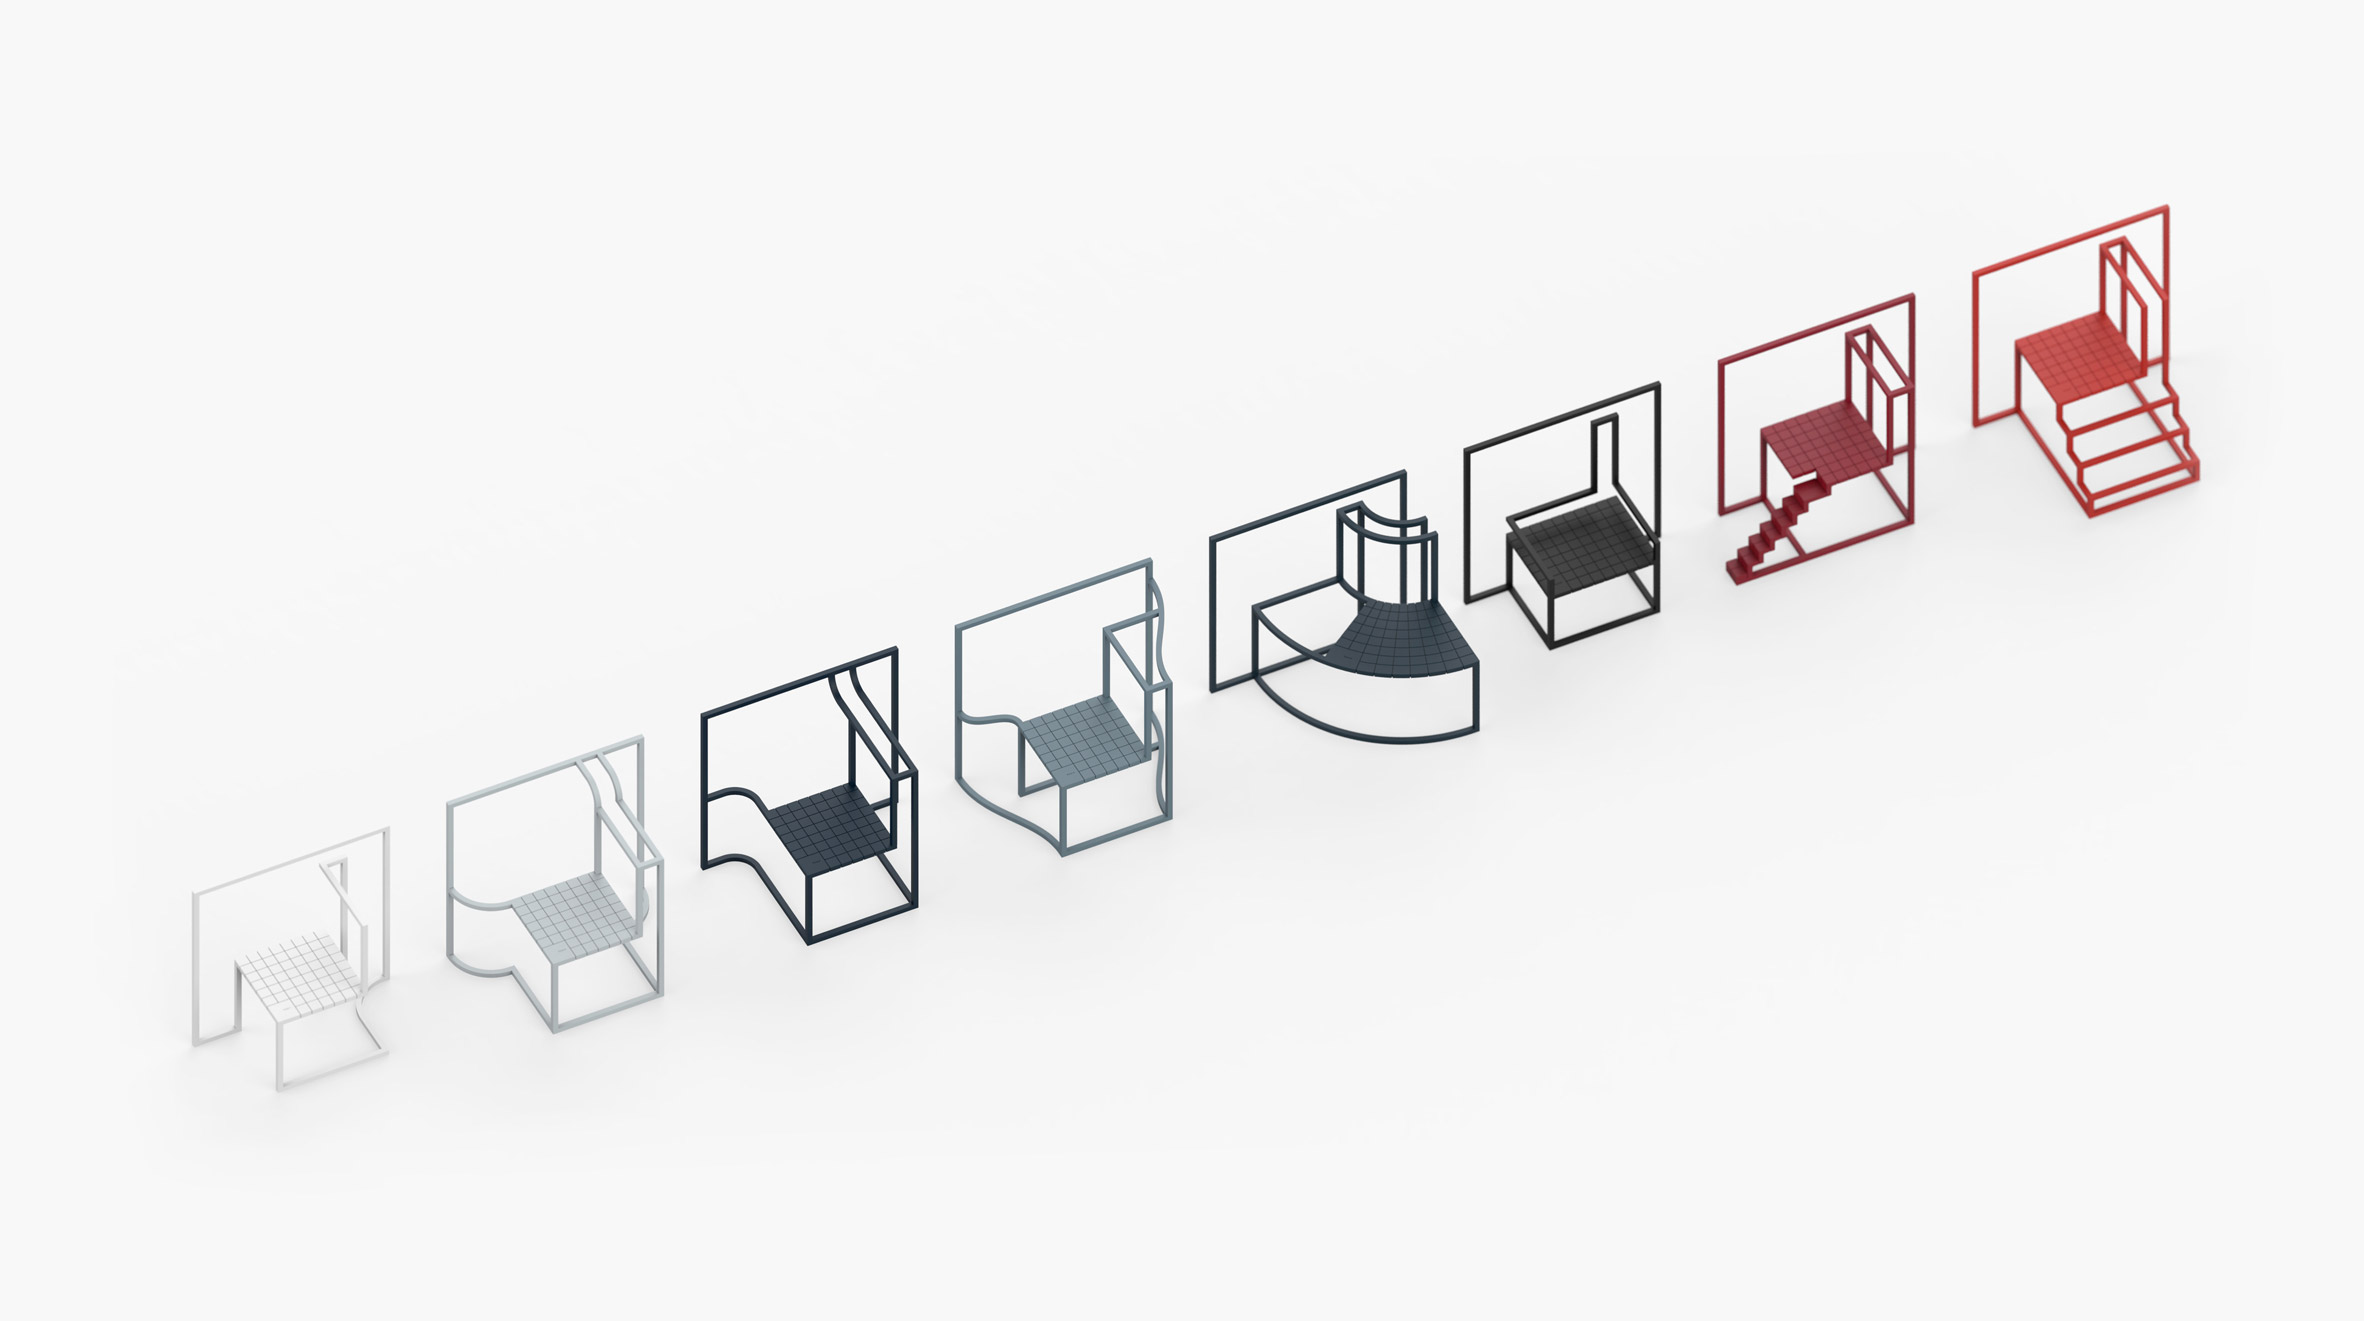 Andrea Ponti models chair series on Hong Kong's urban architecture